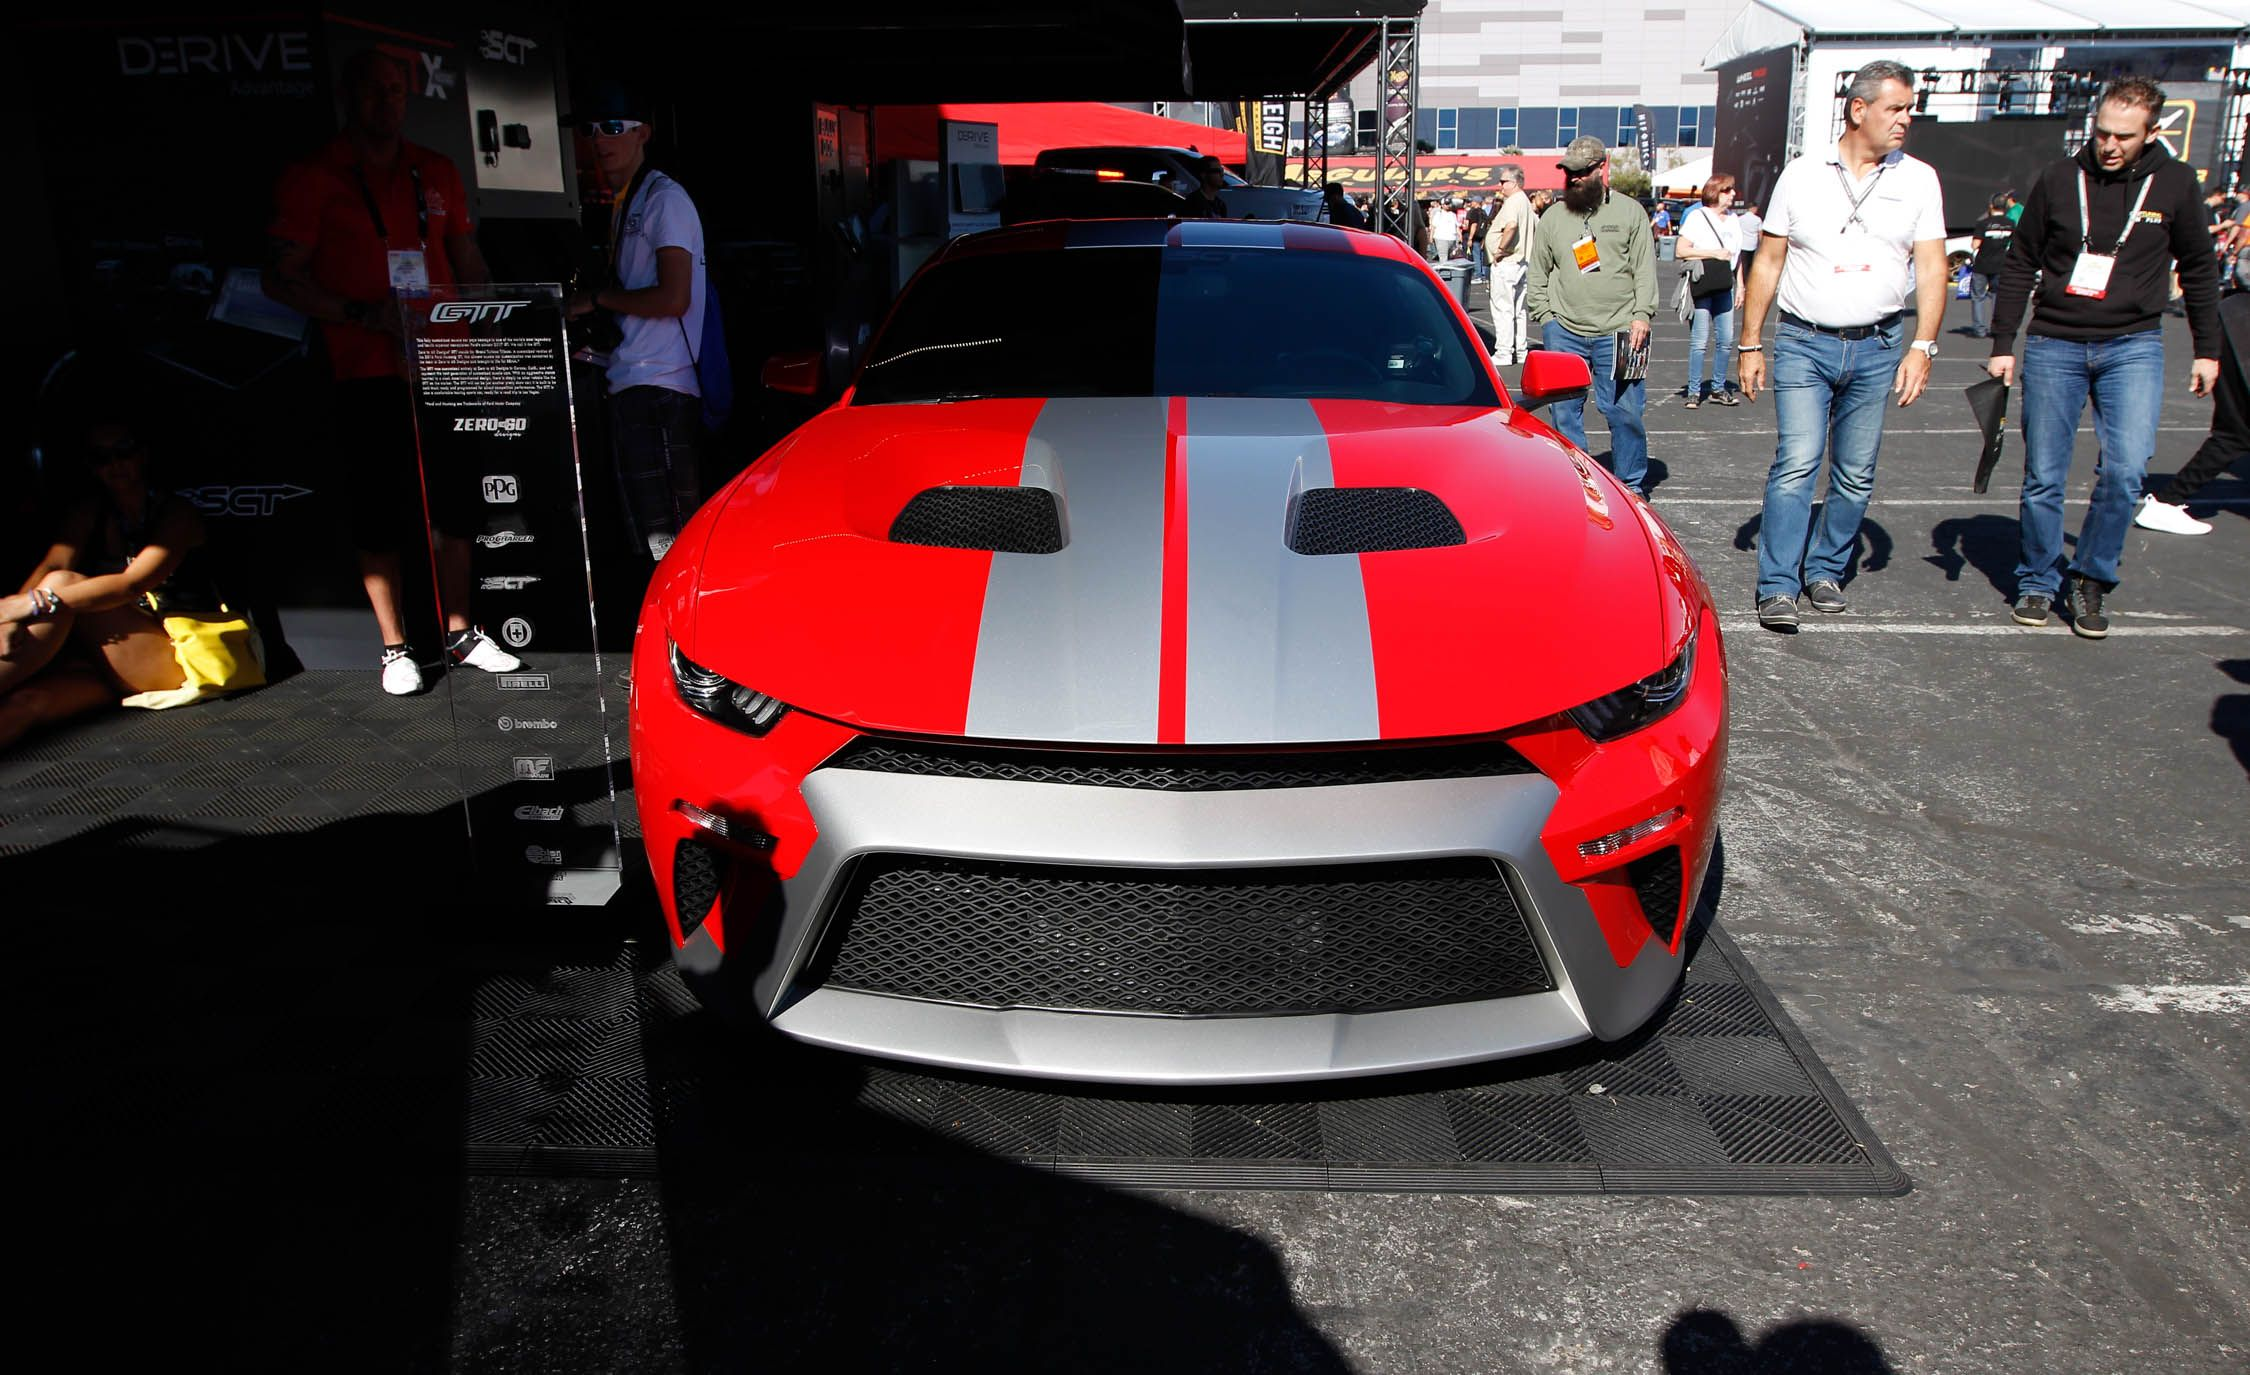 Ford Mustang Gtt By Zero To 60 Designs Pictures Photo Gallery